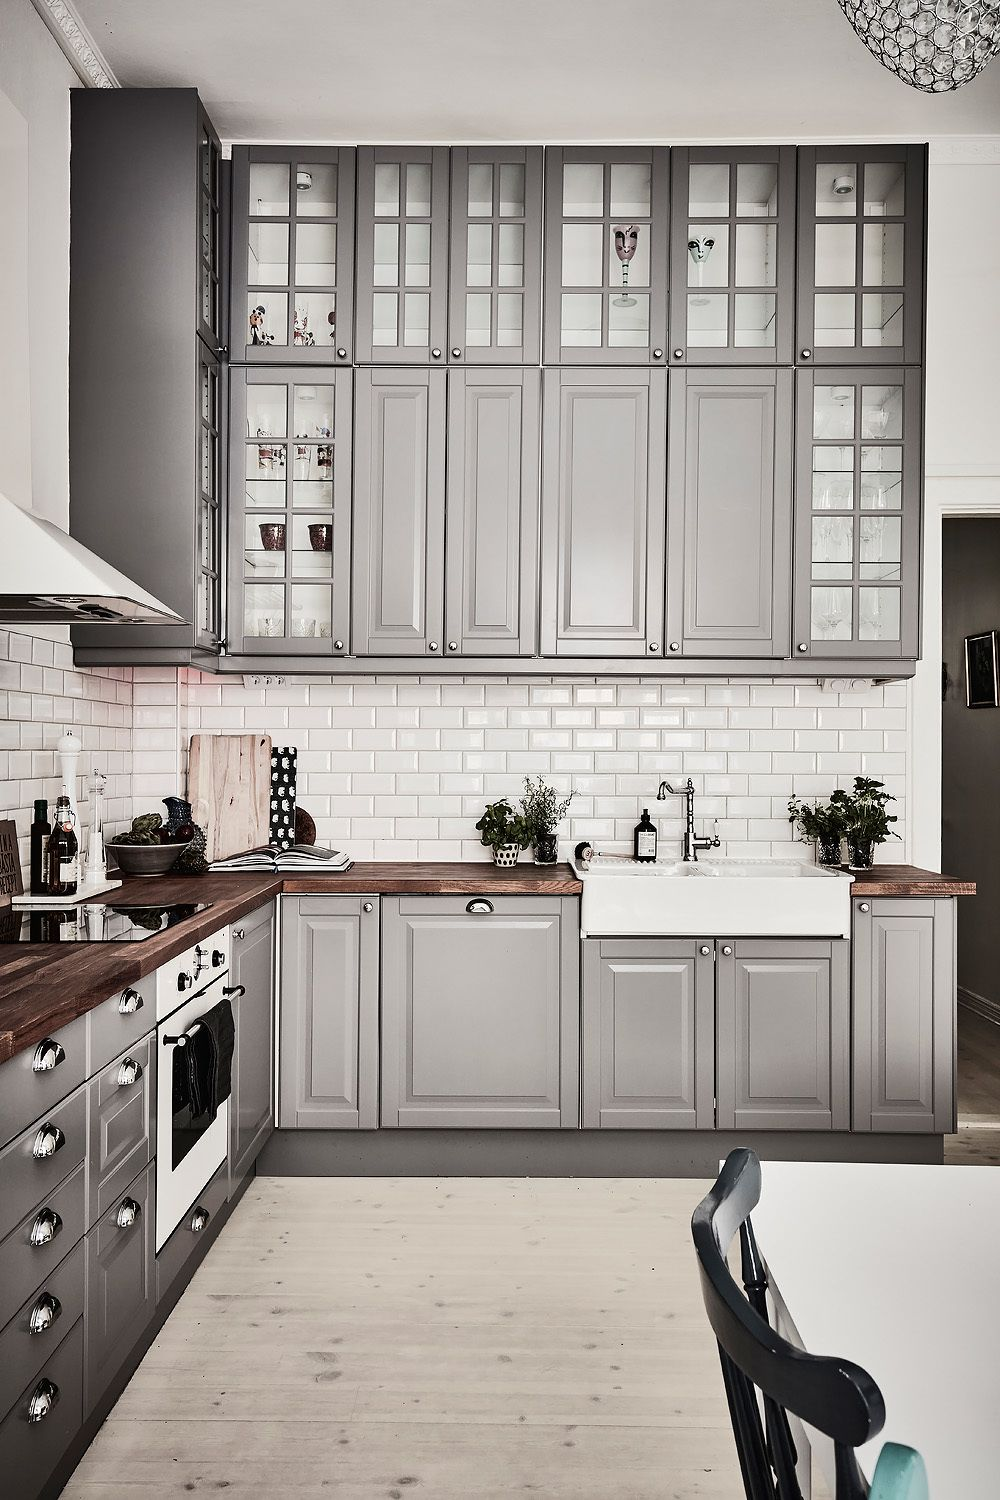 Inspiring Kitchens You Wont Believe Are IKEA Decorating Tips - Kitchen color schemes with grey cabinets